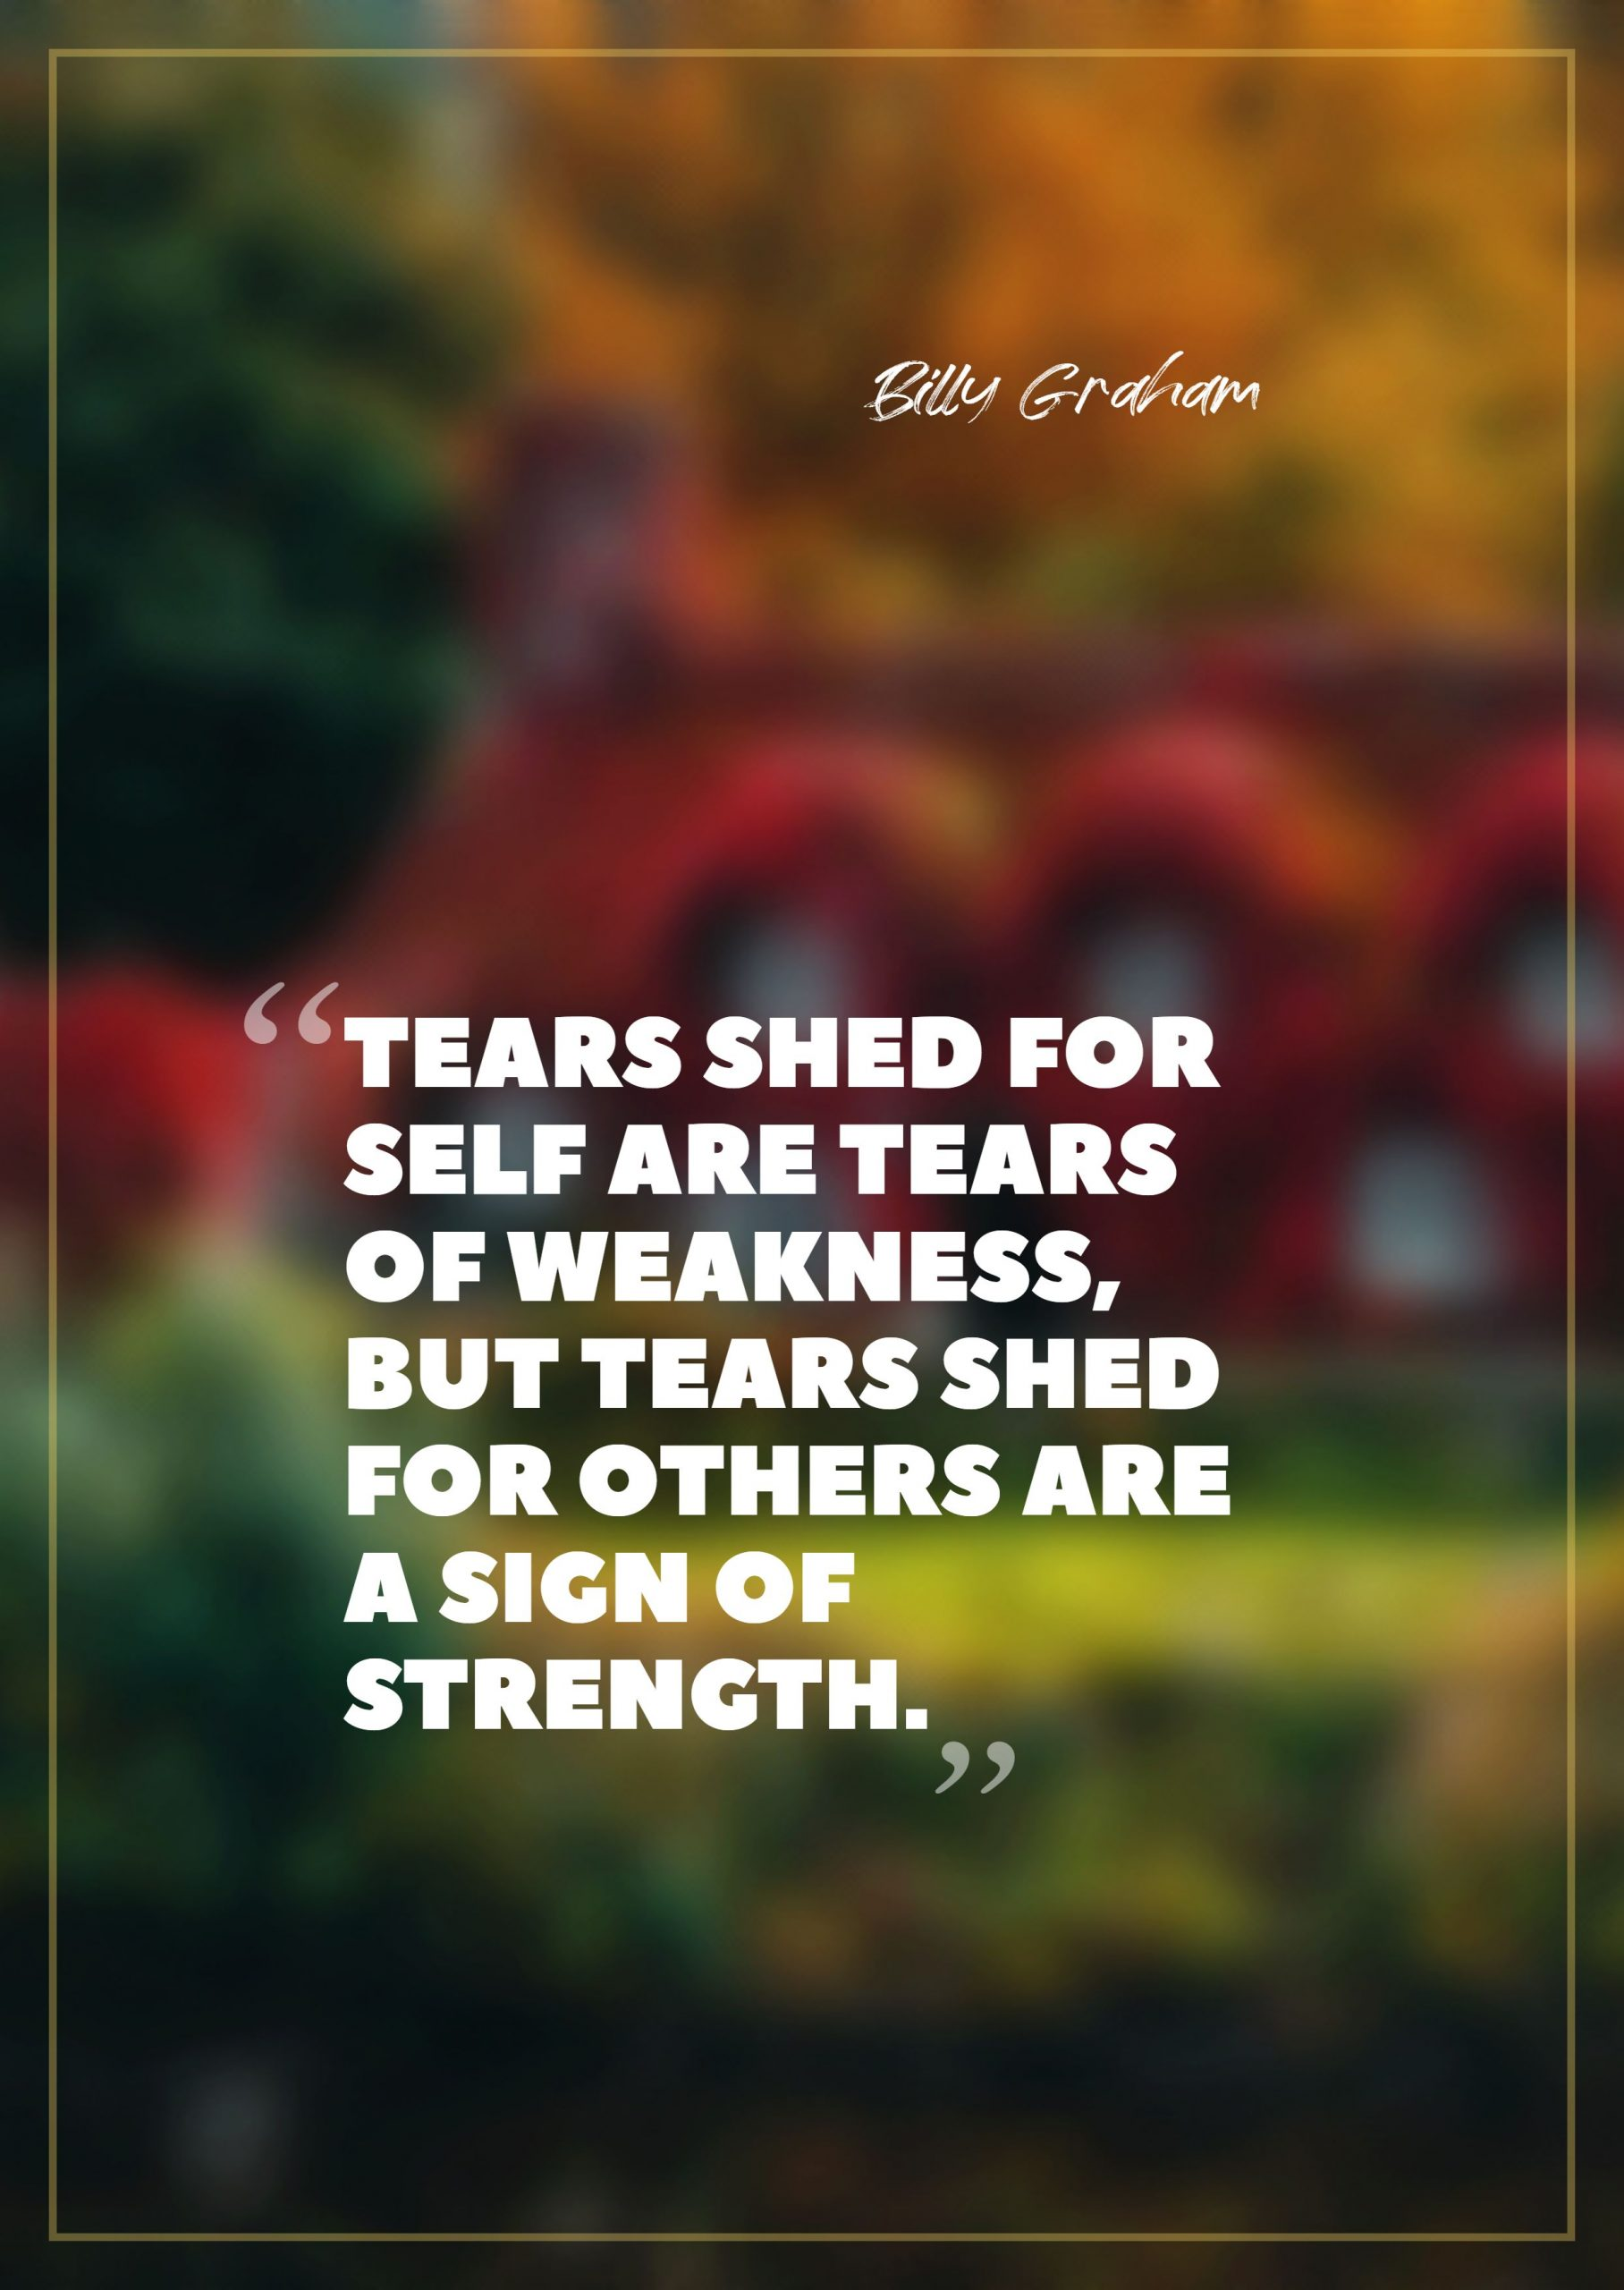 Quotes image of Tears shed for self are tears of weakness, but tears shed for others are a sign of strength.